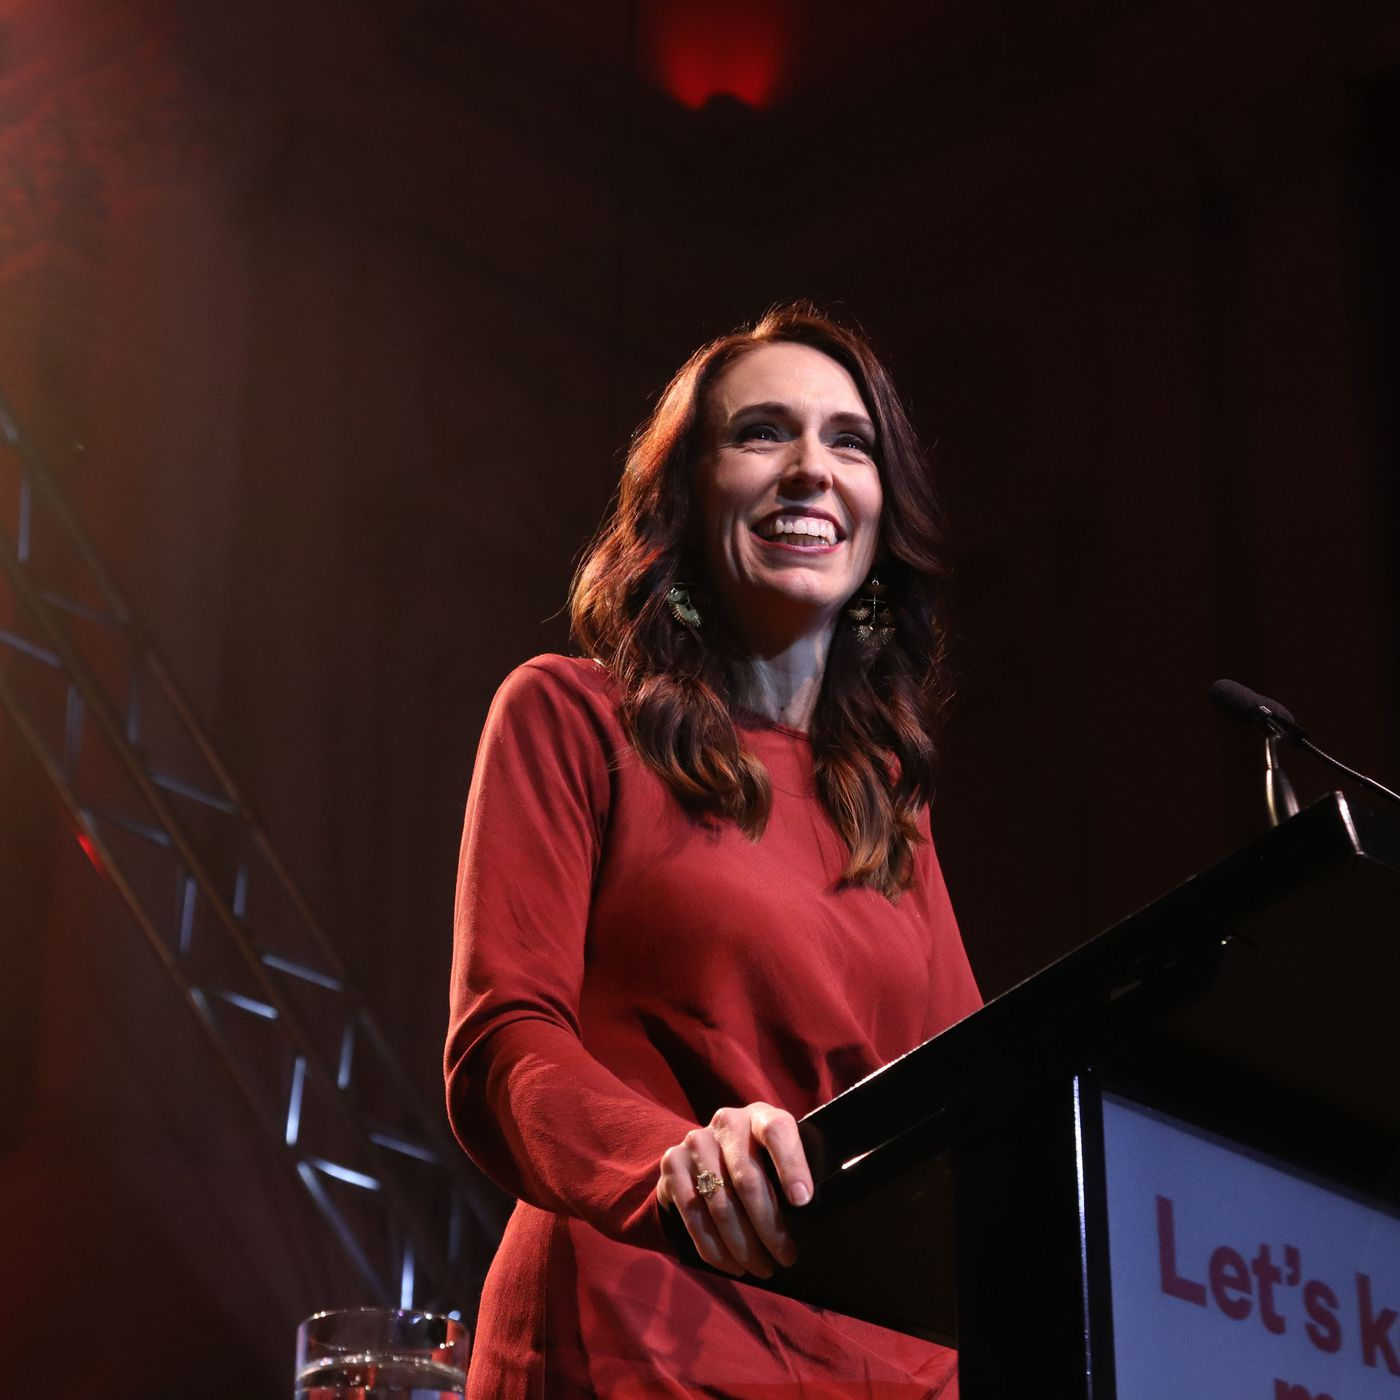 New Zealand's Jacinda Ardern, hailed for Covid-19 response, wins historic  reelection - Vox